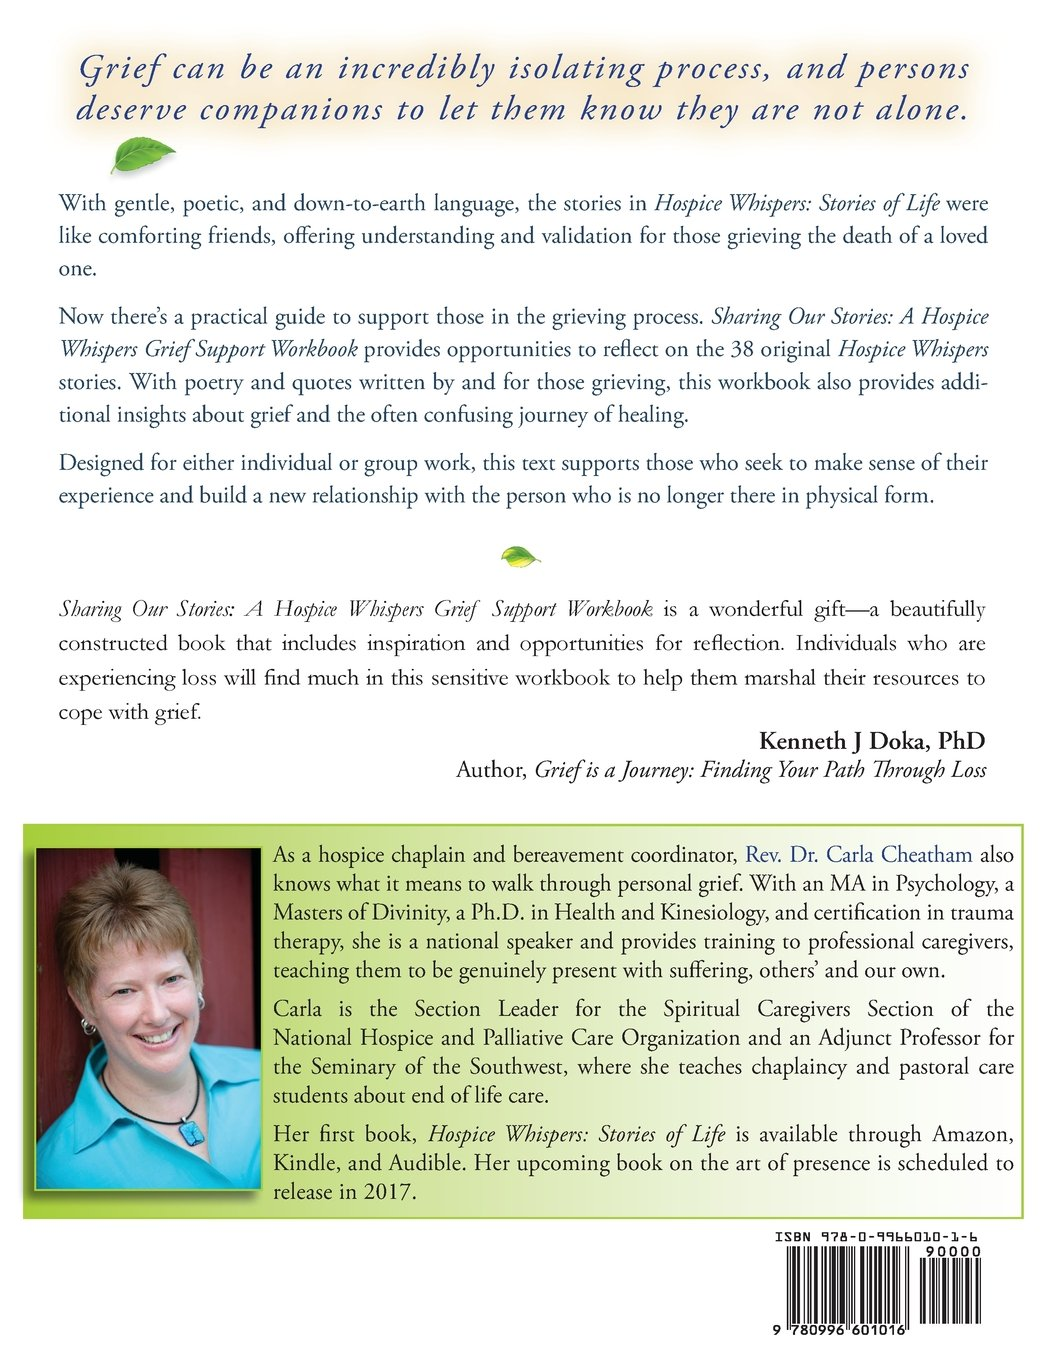 Sharing Our Stories: A Hospice Whispers Grief Support Workbook ...